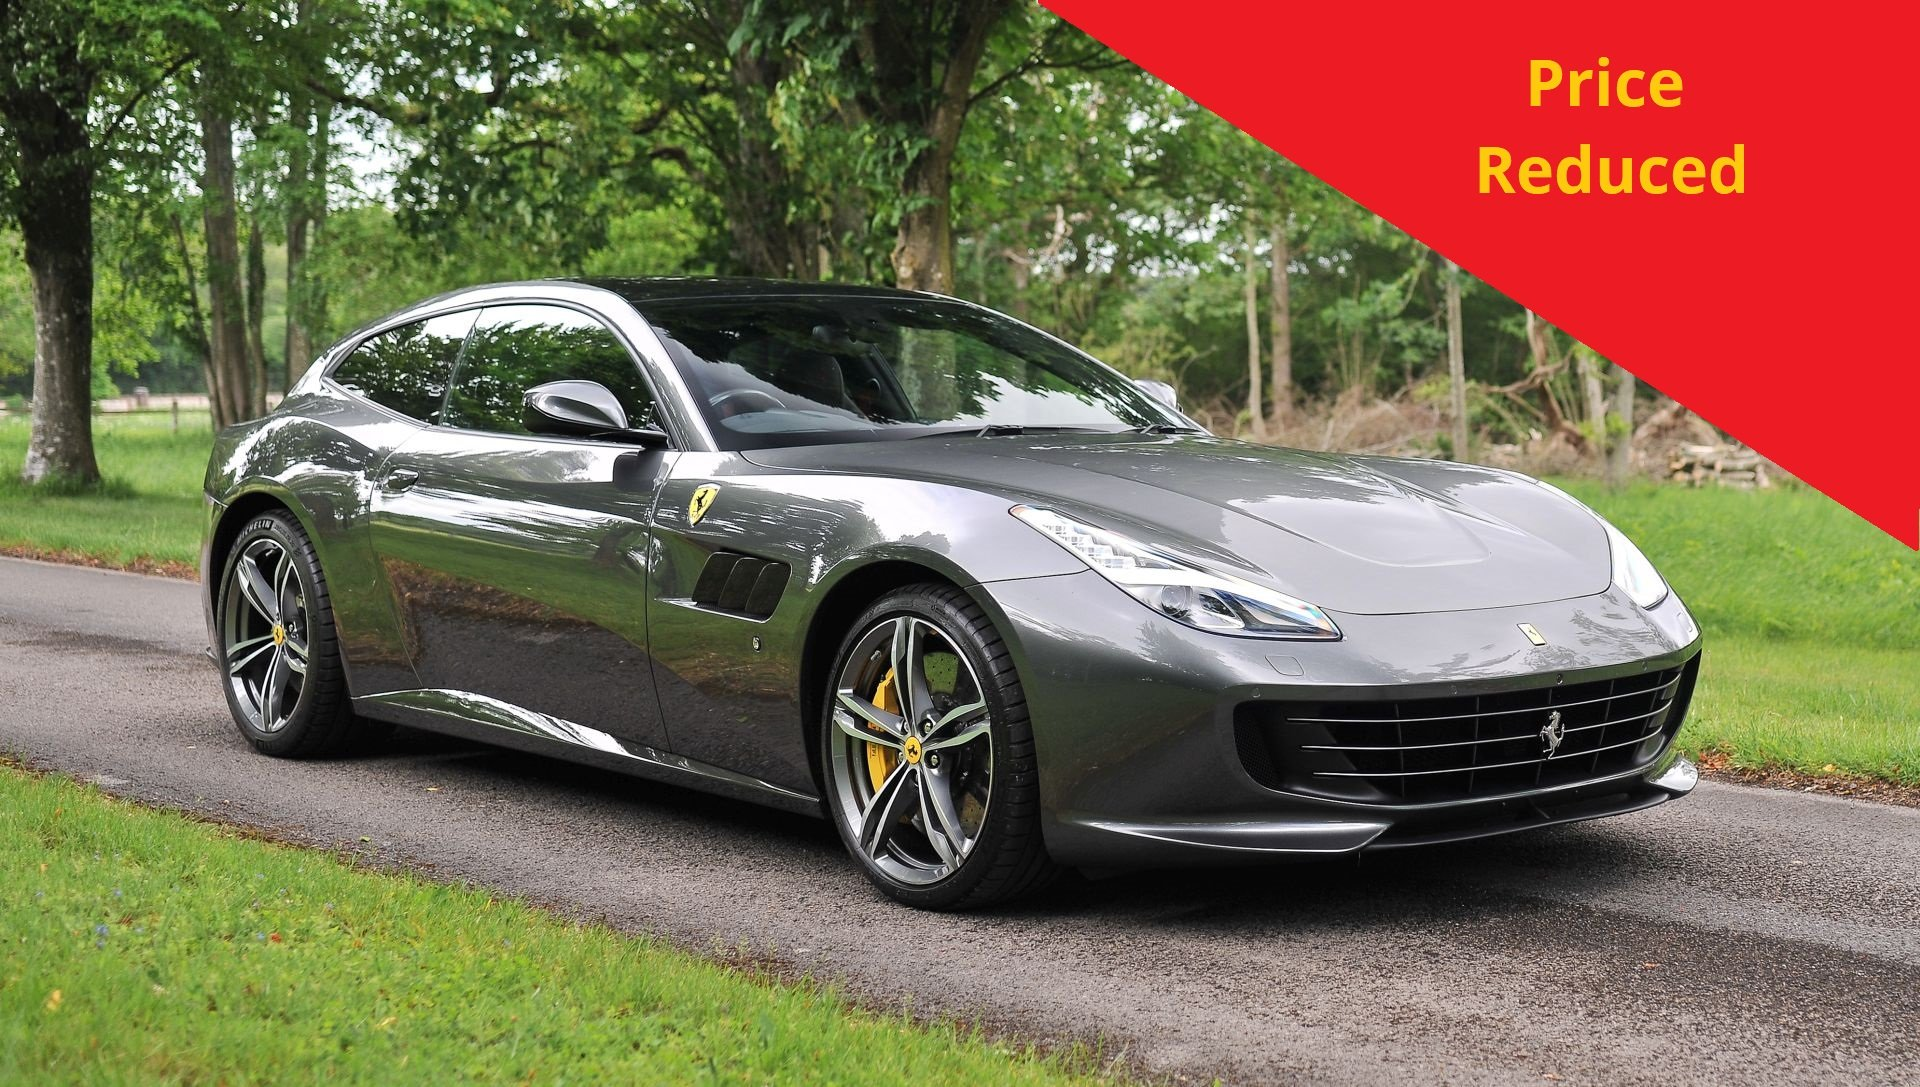 2017 Ferrari GTC4 Lusso 6.3 V12 with only 5821 miles SOLD (picture 1 of 6)